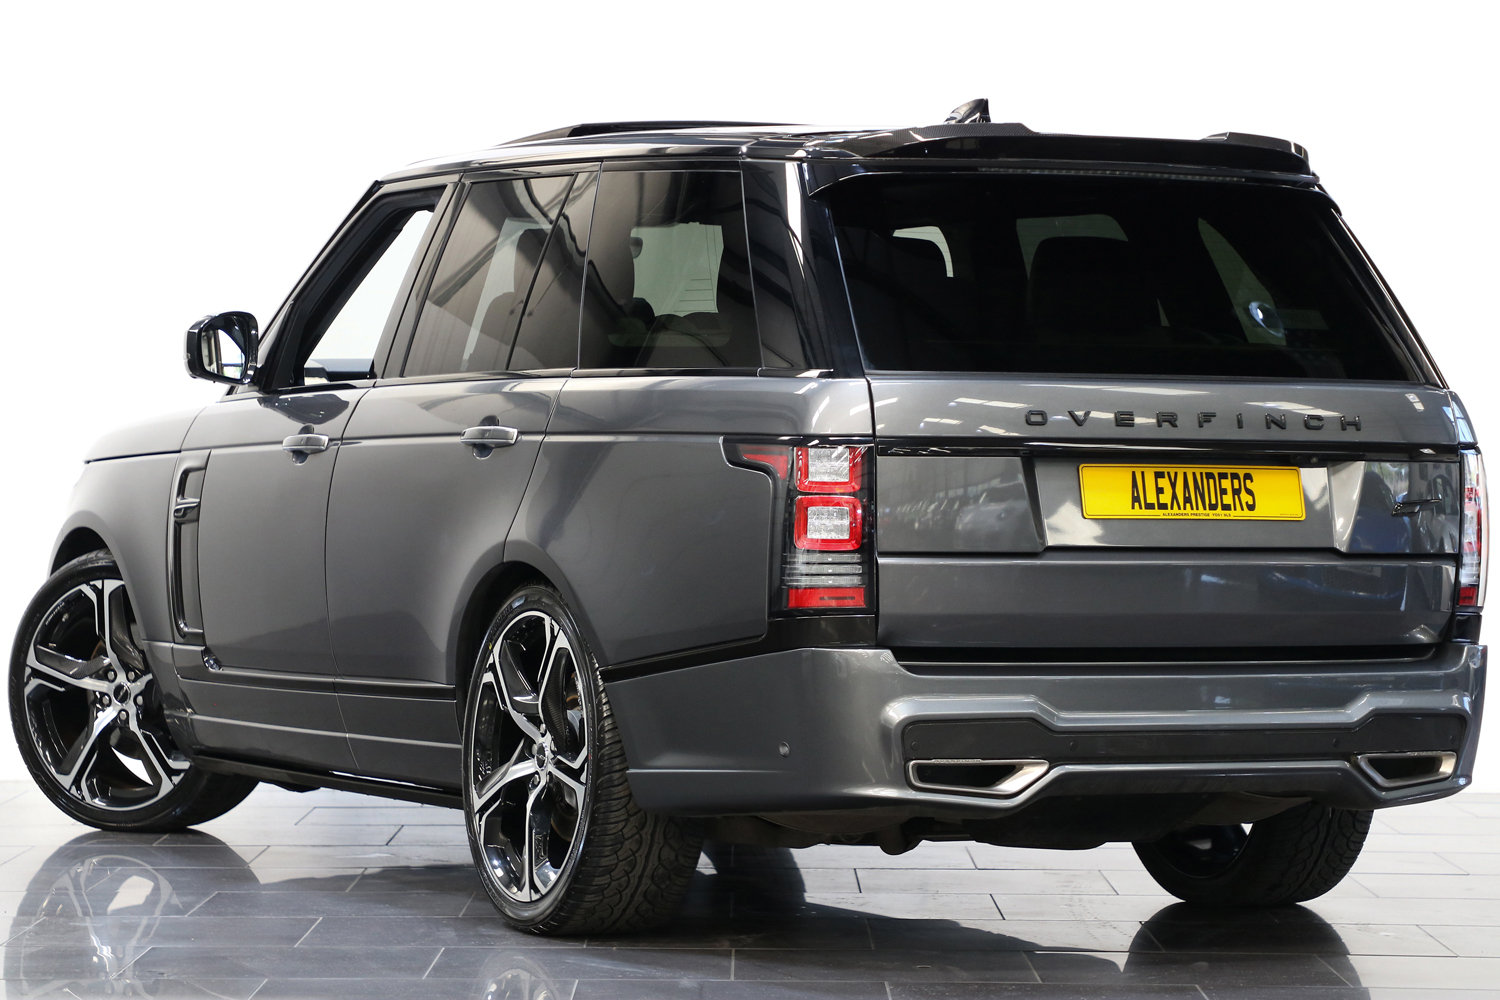 2017 67 RANGE ROVER 4.4 SDV8 AUTOBIOGRAPHY OVERFINCH AUTO  For Sale (picture 3 of 6)